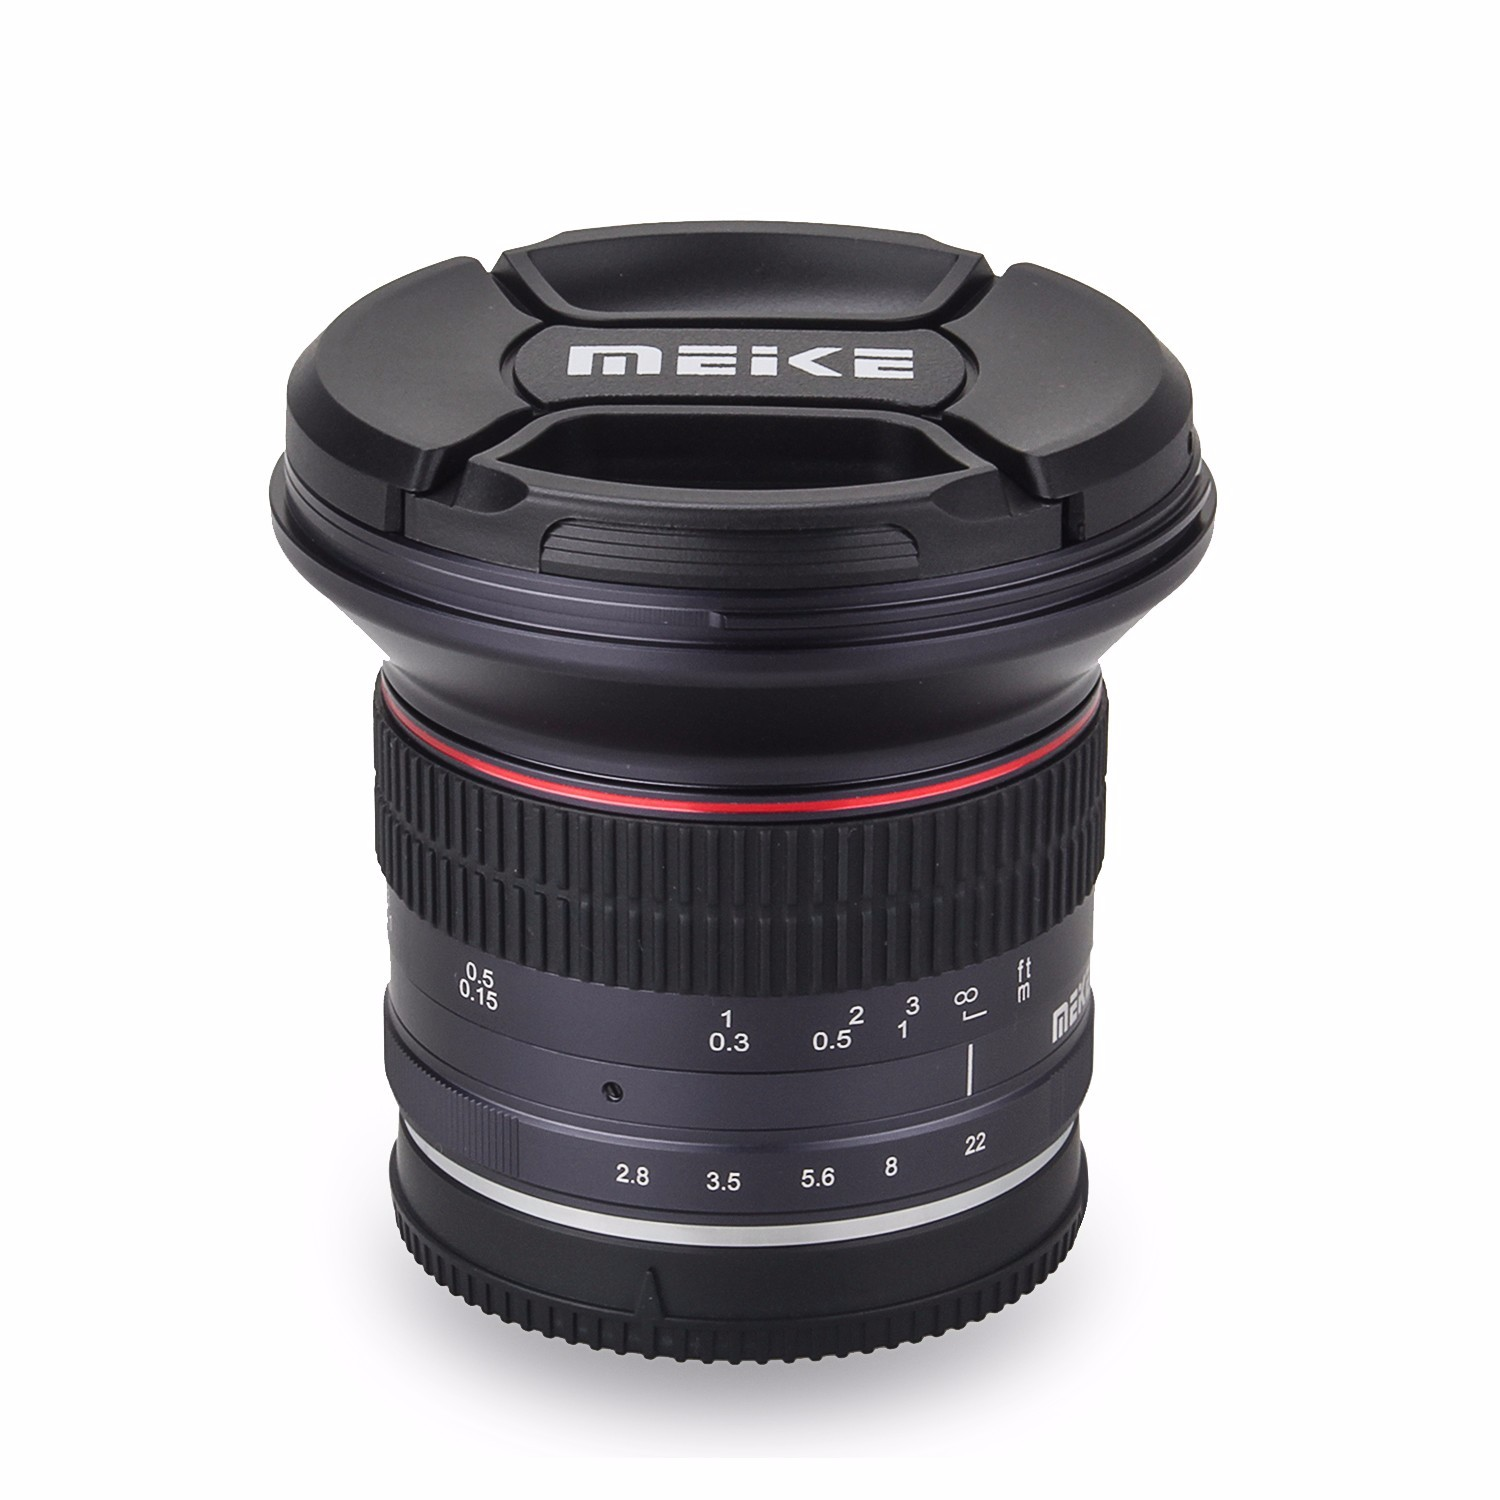 Meike 12mm f/2.8 Ultra Wide Angle Fixed Lens with Removeable Hood for Panasonic/Olympus Mirrorless Camera MFT Micro 4/3 Mount meike 12mm f 2 8 wide angle fixed lens with removeable hood for panasonic olympus mirrorless camera mft m4 3 mount with aps c